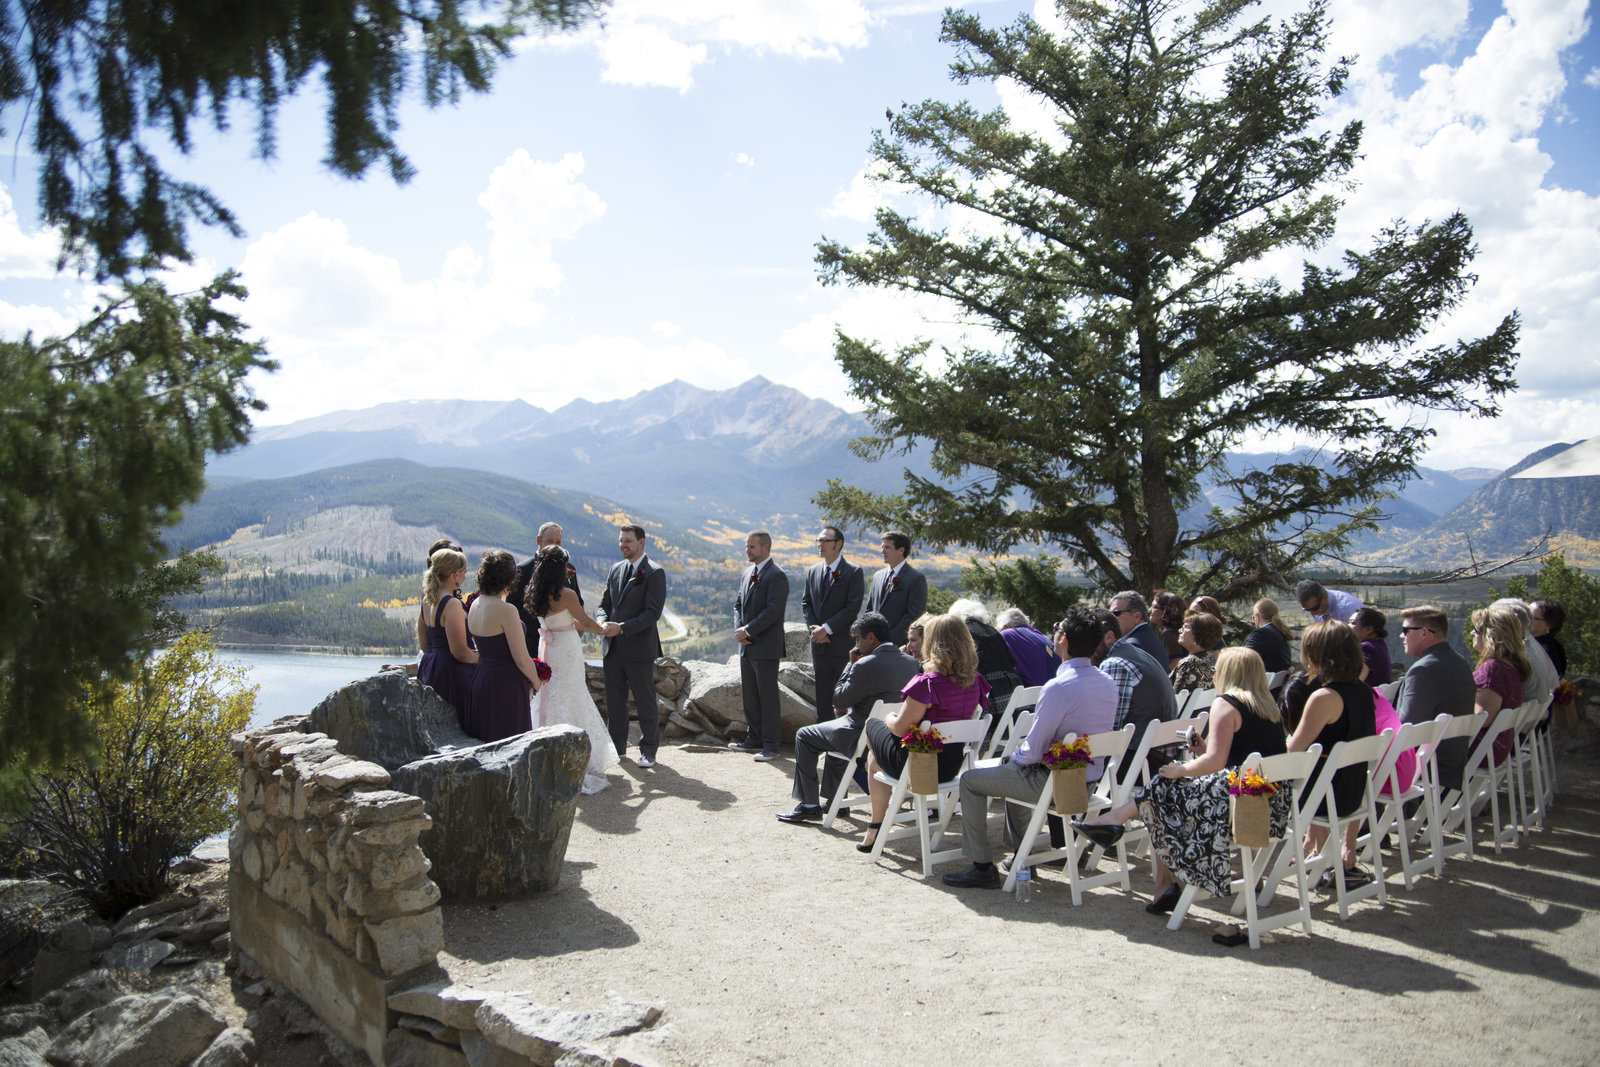 Jessi-Zach-Photography-Colorado-Wedding-Photographer-Sapphire-Point-Breckenridge_2